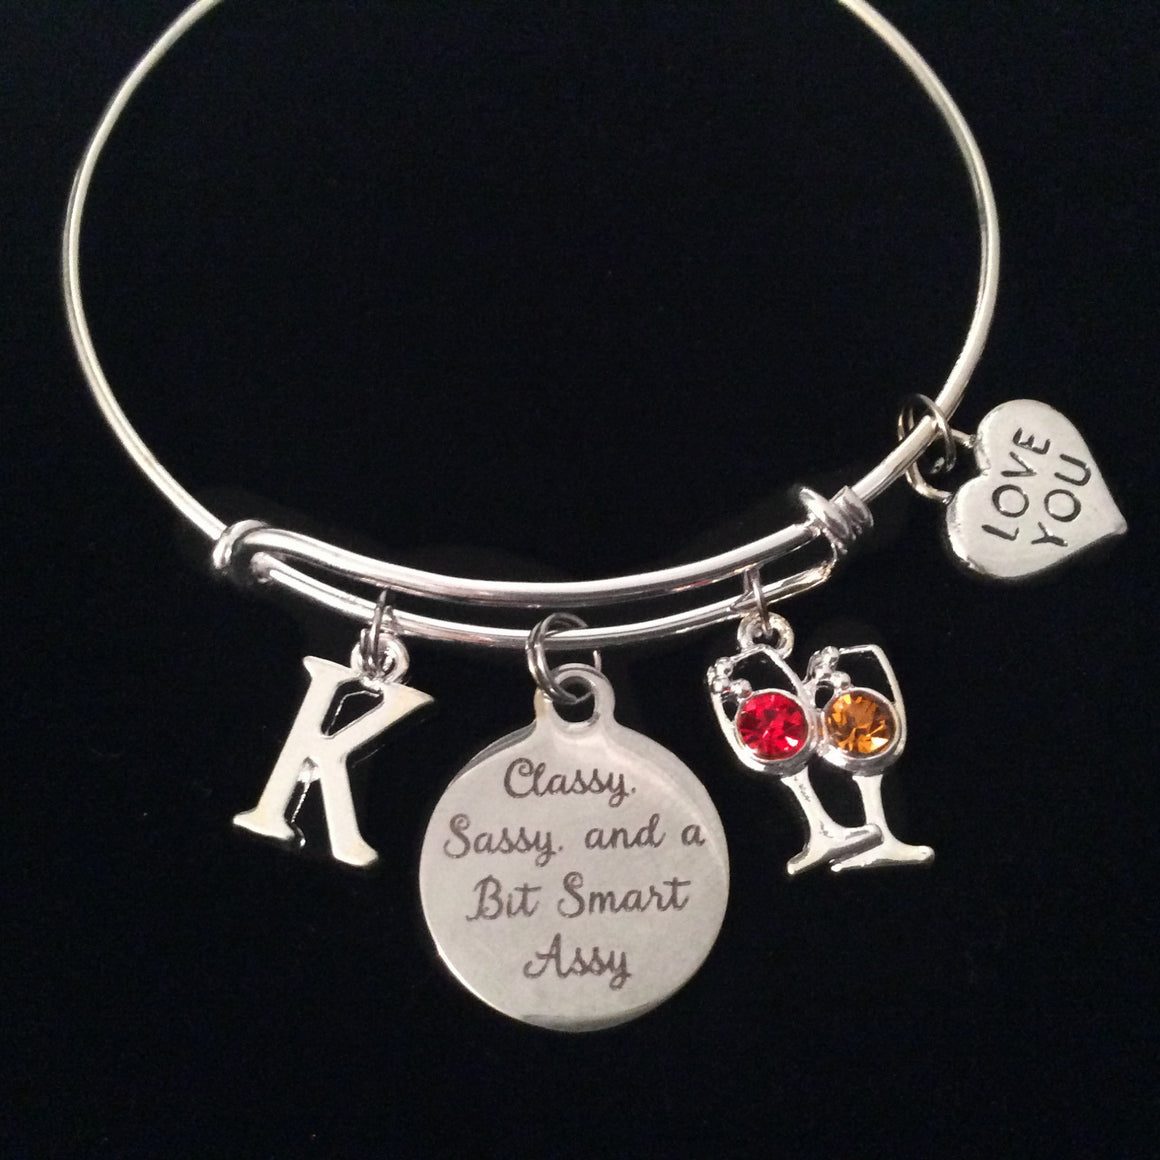 Wine Glasses Classy, Sassy, and a Bit Smart Assy Expandable Charm Bracelet Initial Adjustable Bangle Gift